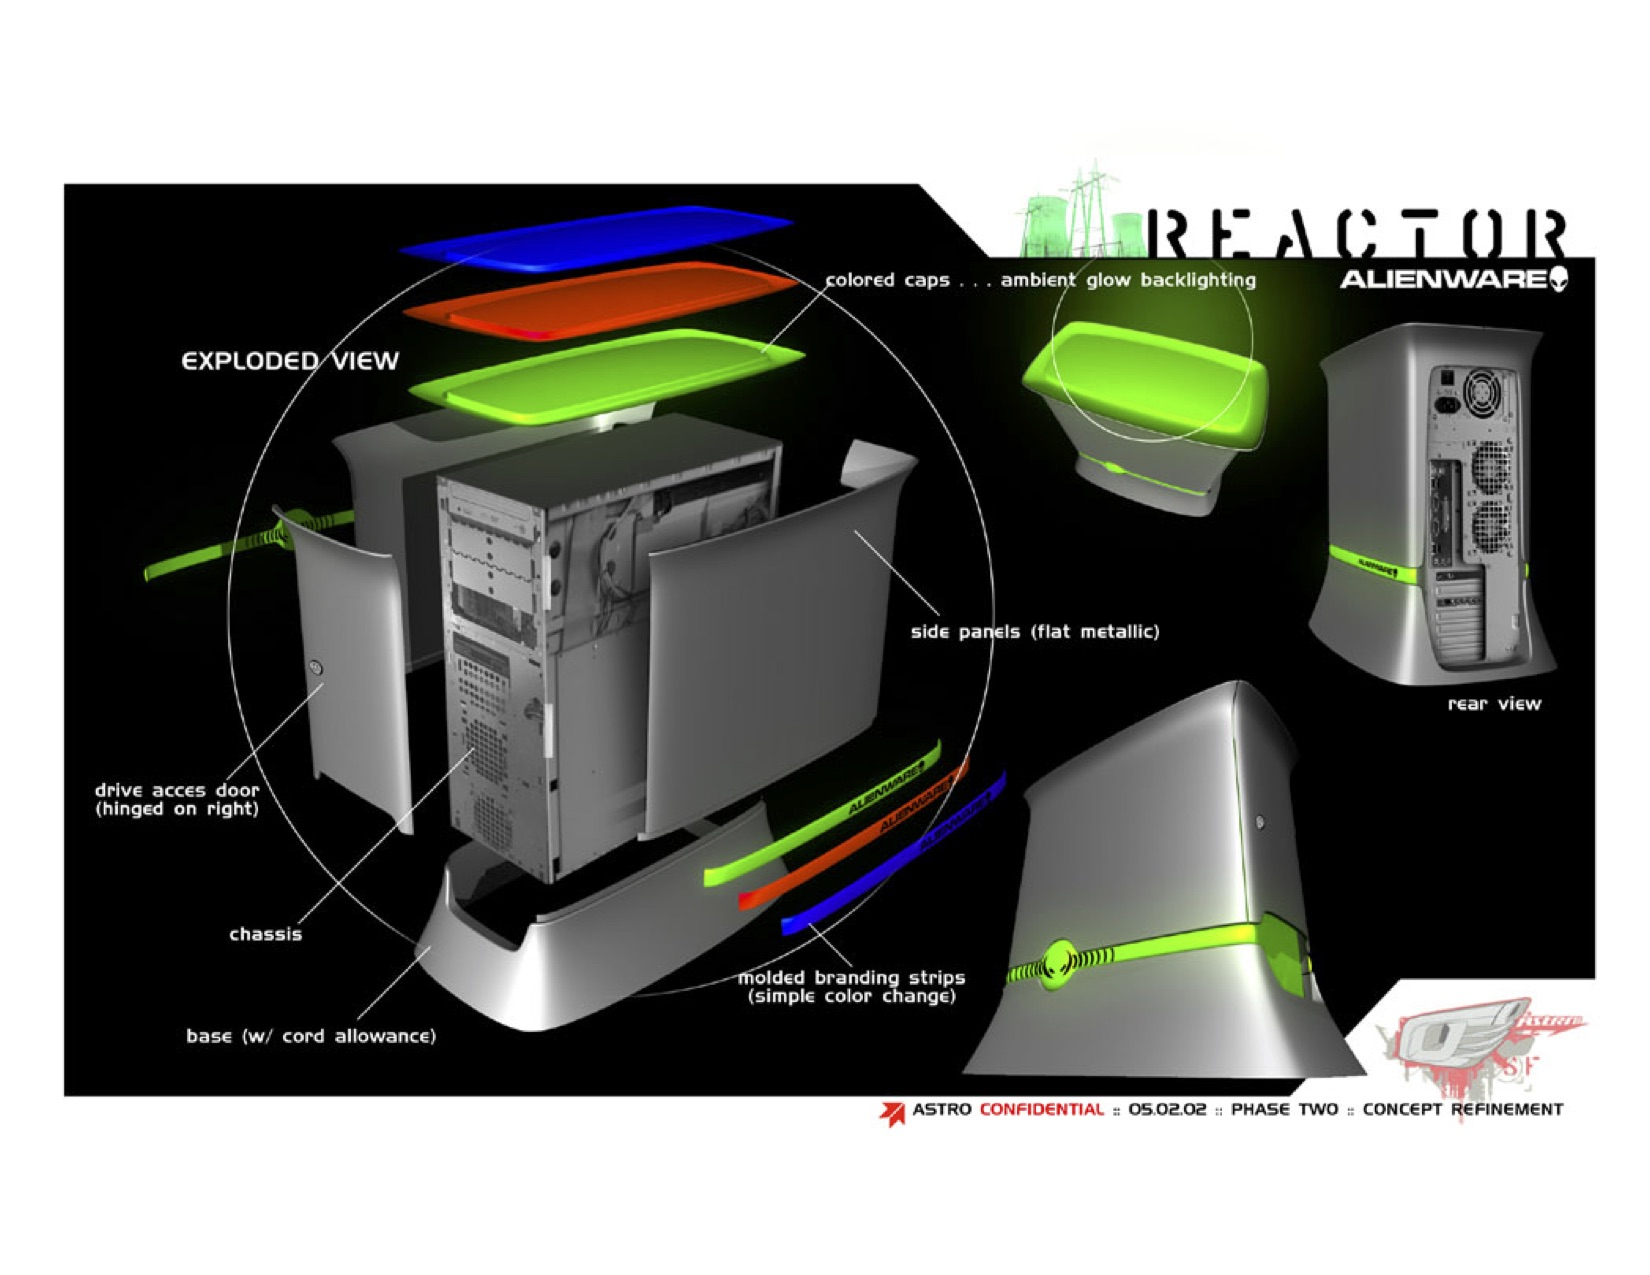 The Alienware Reactor refined again